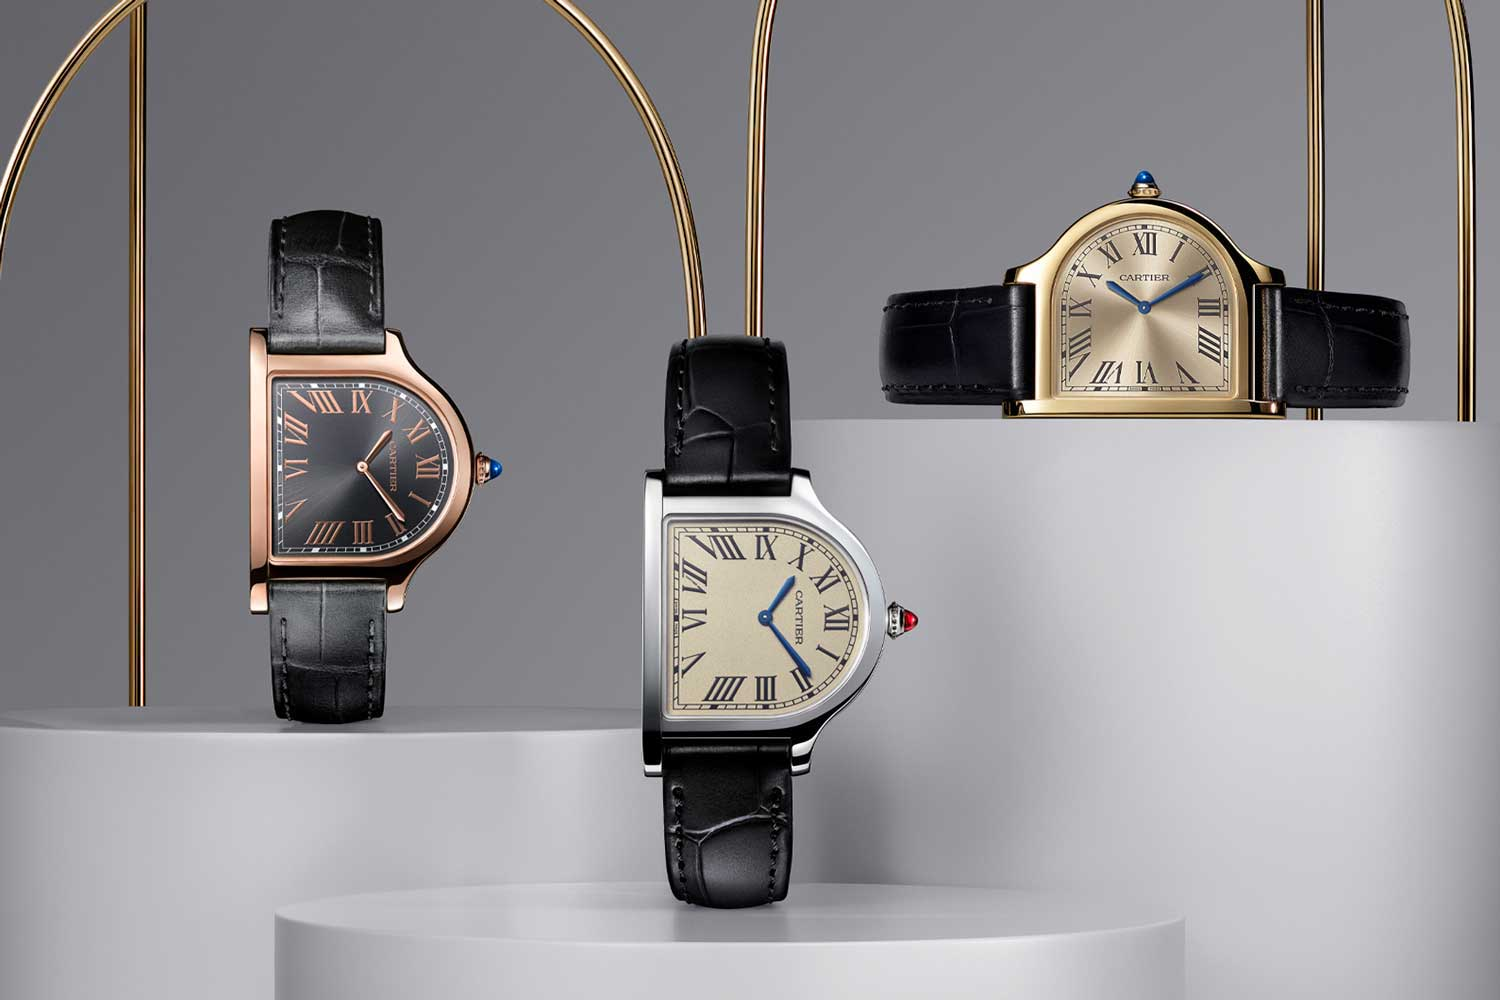 The new Cloche de Cartier watches